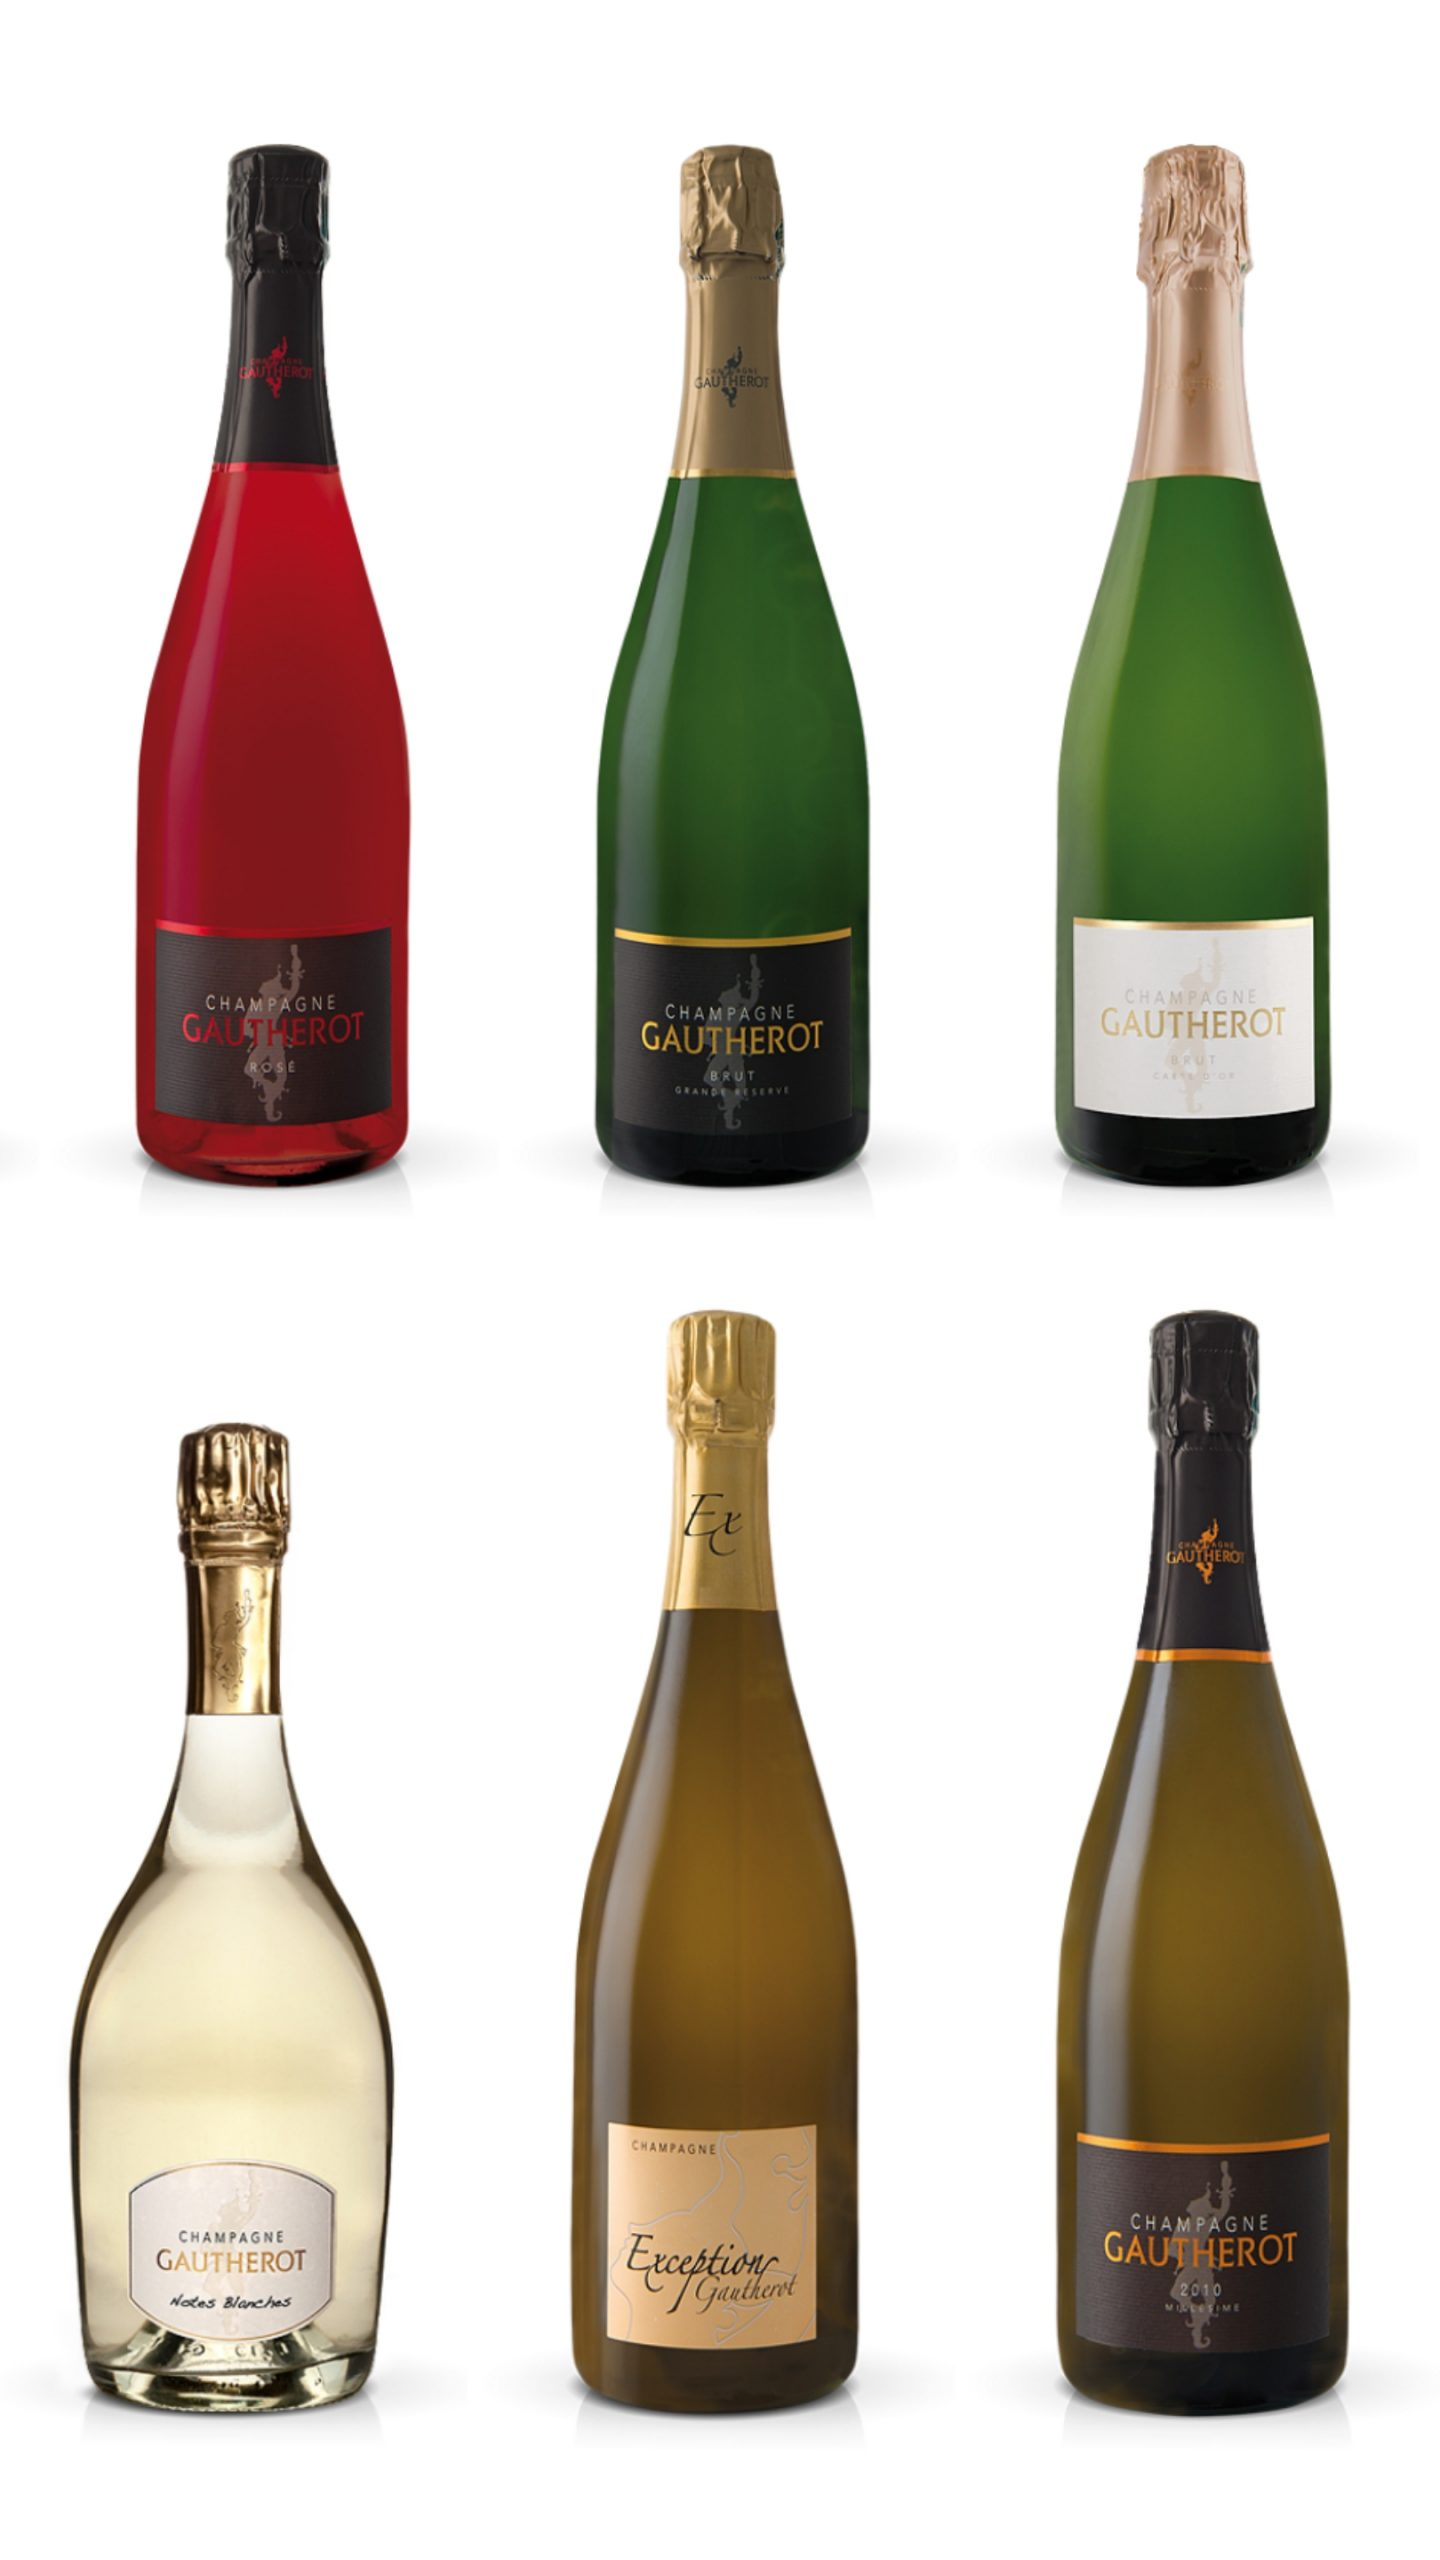 Champagne_Gautherot